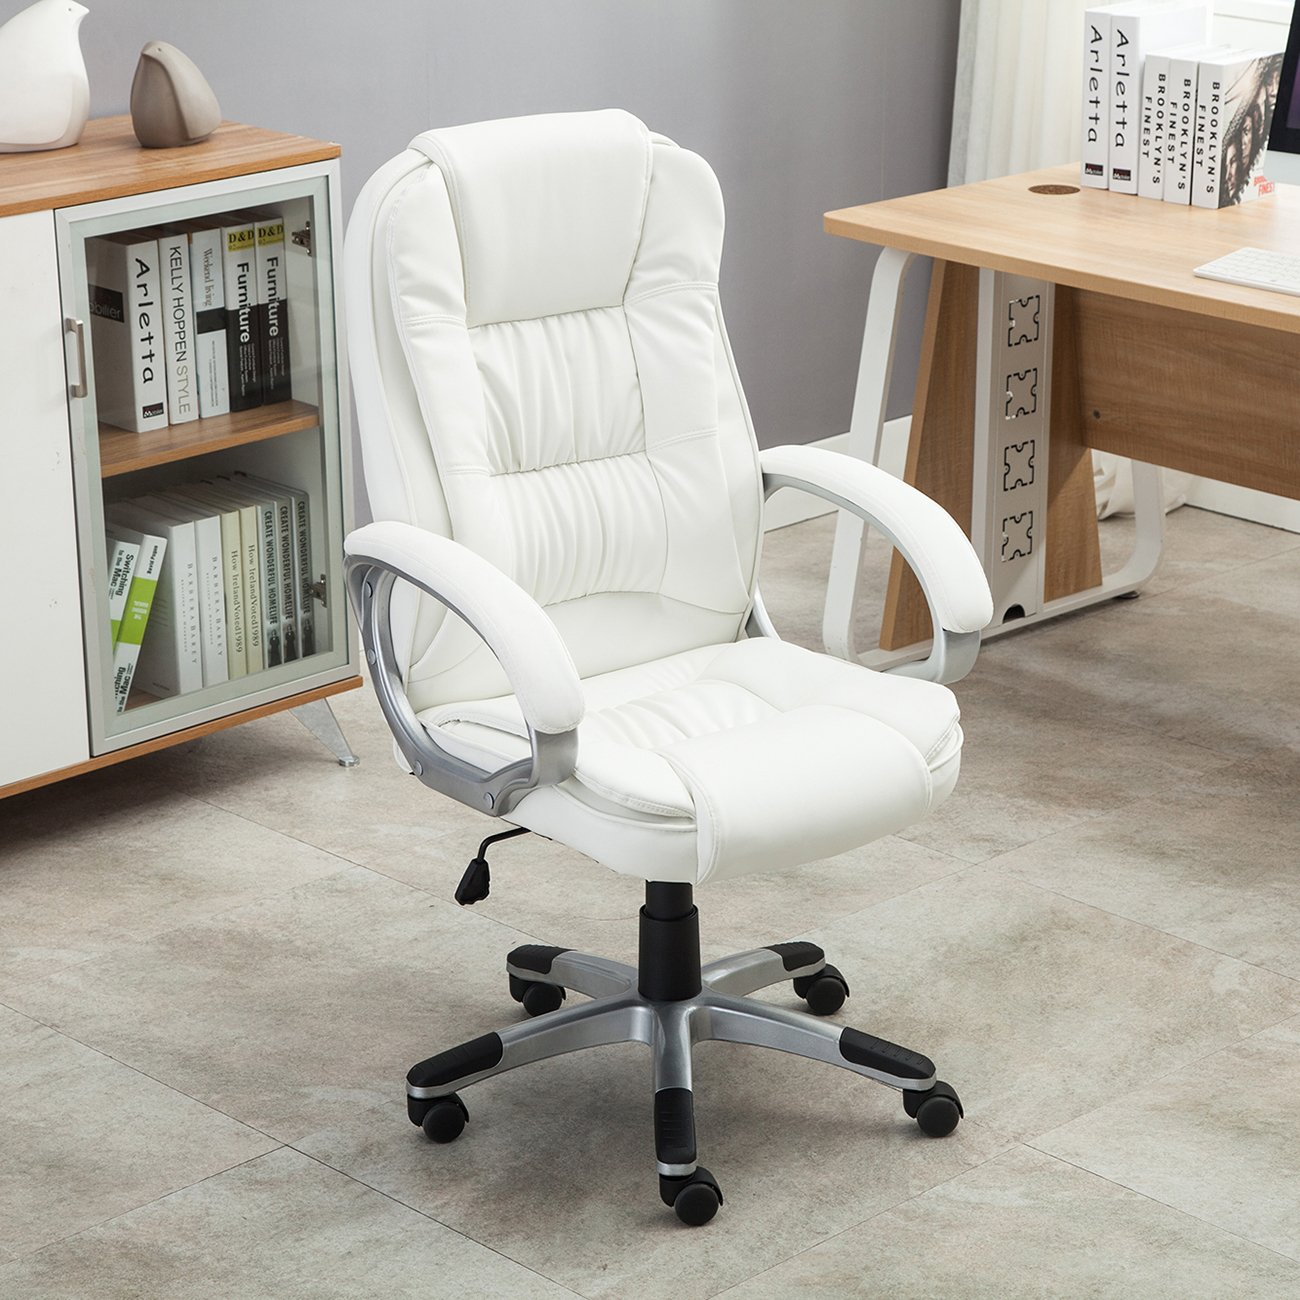 Belleze Ergonomic Office PU Leather Chair Executive Computer Hydraulic, White by Belleze